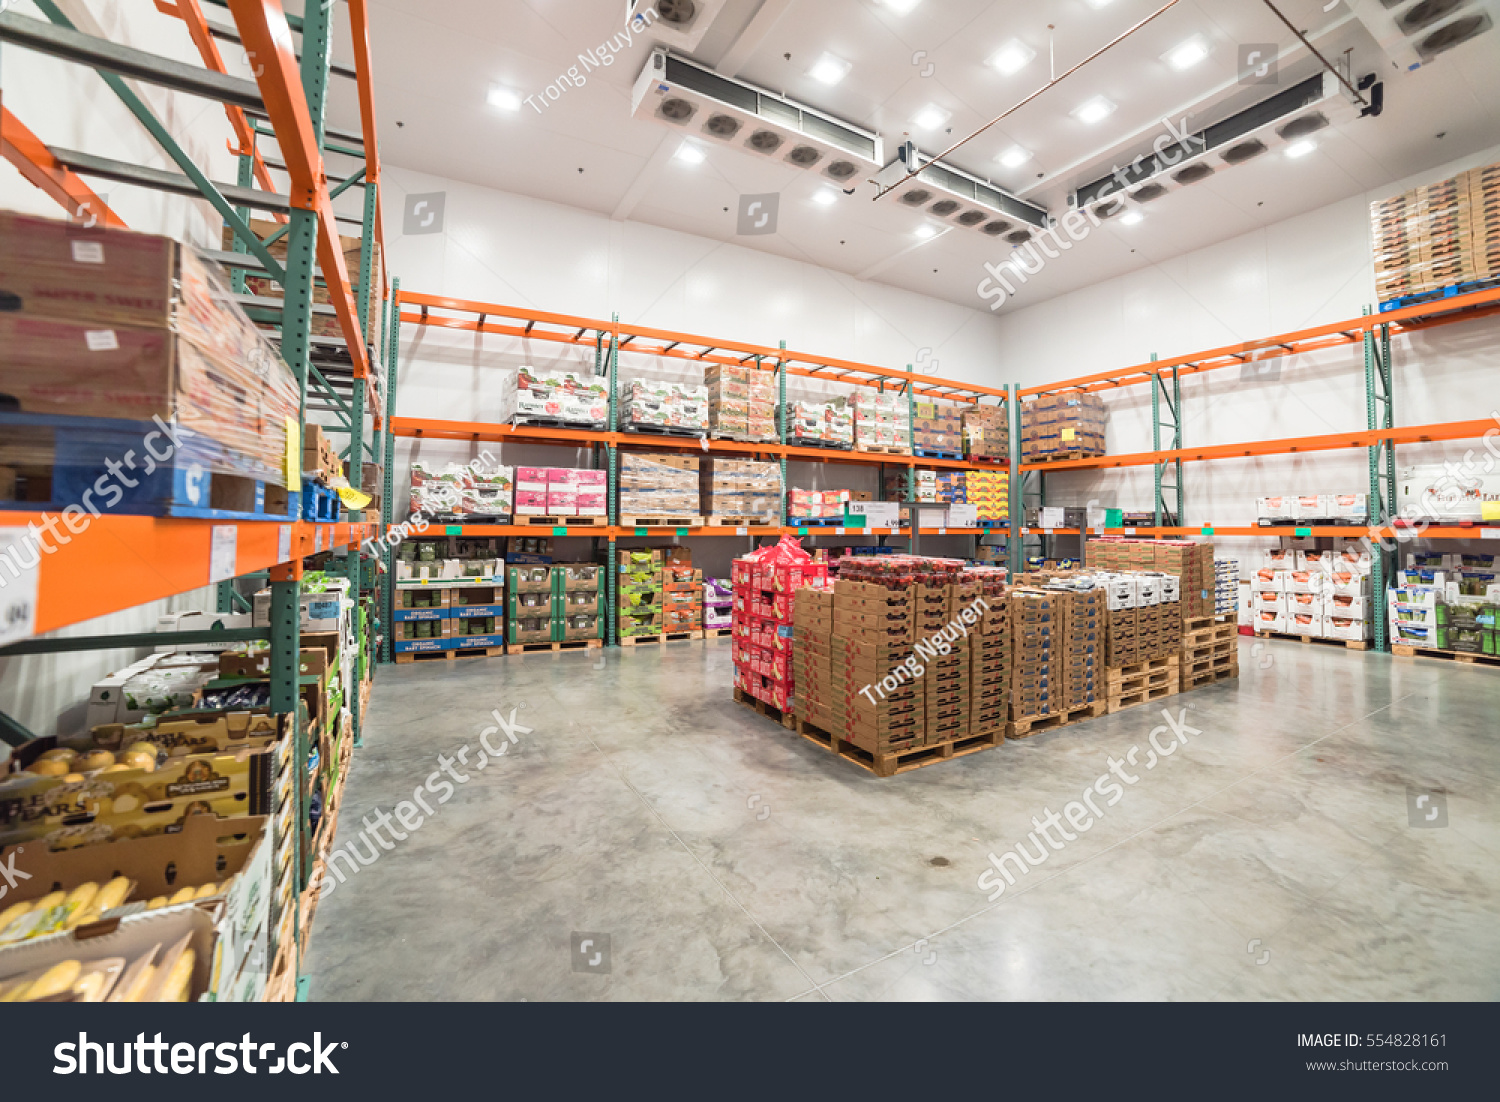 costco search photostok stock image images photos humble tx us jan 12 2017 fresh produce refrigerated room in